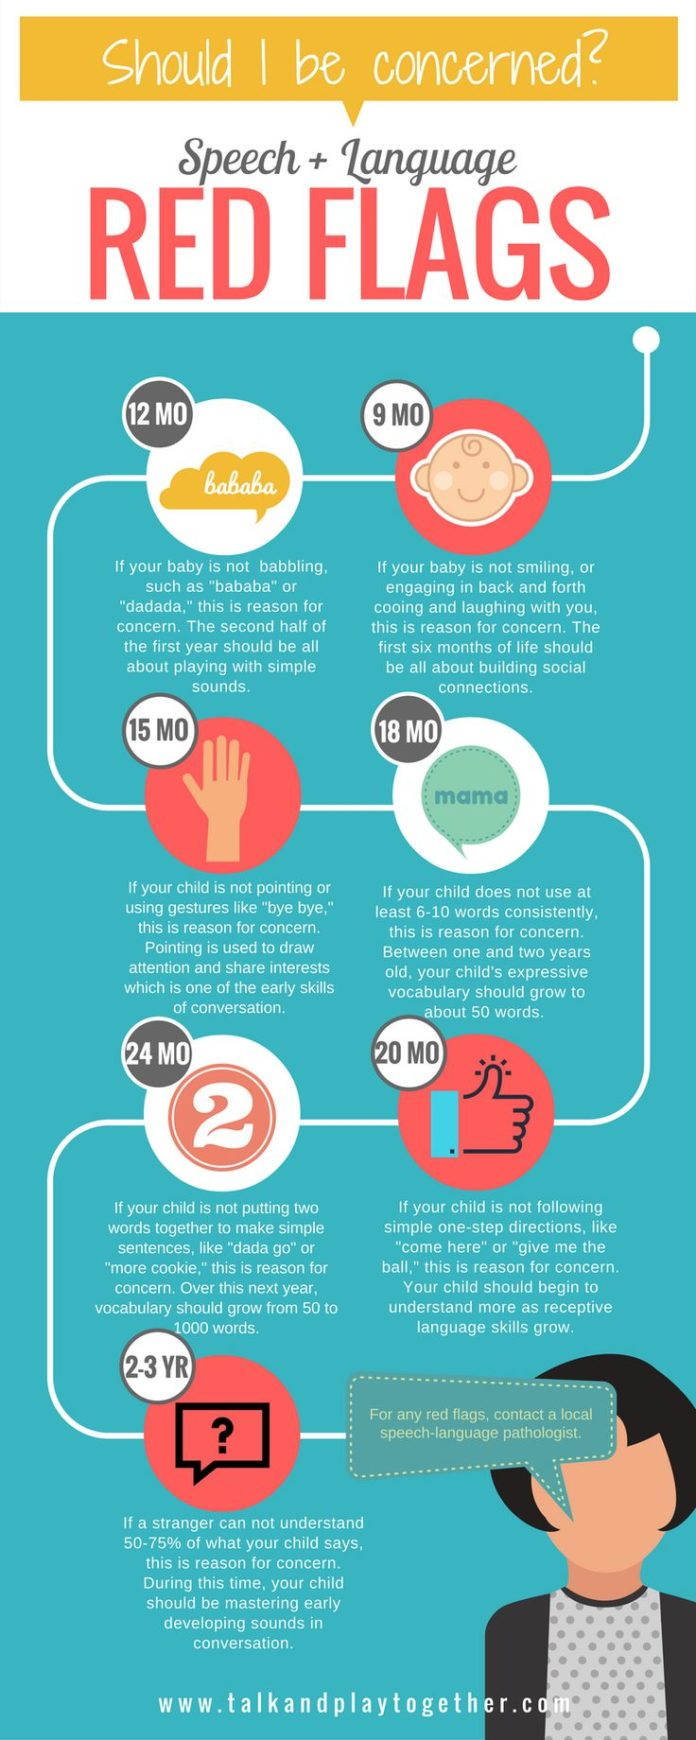 educational infographic when should i be worried a speech and